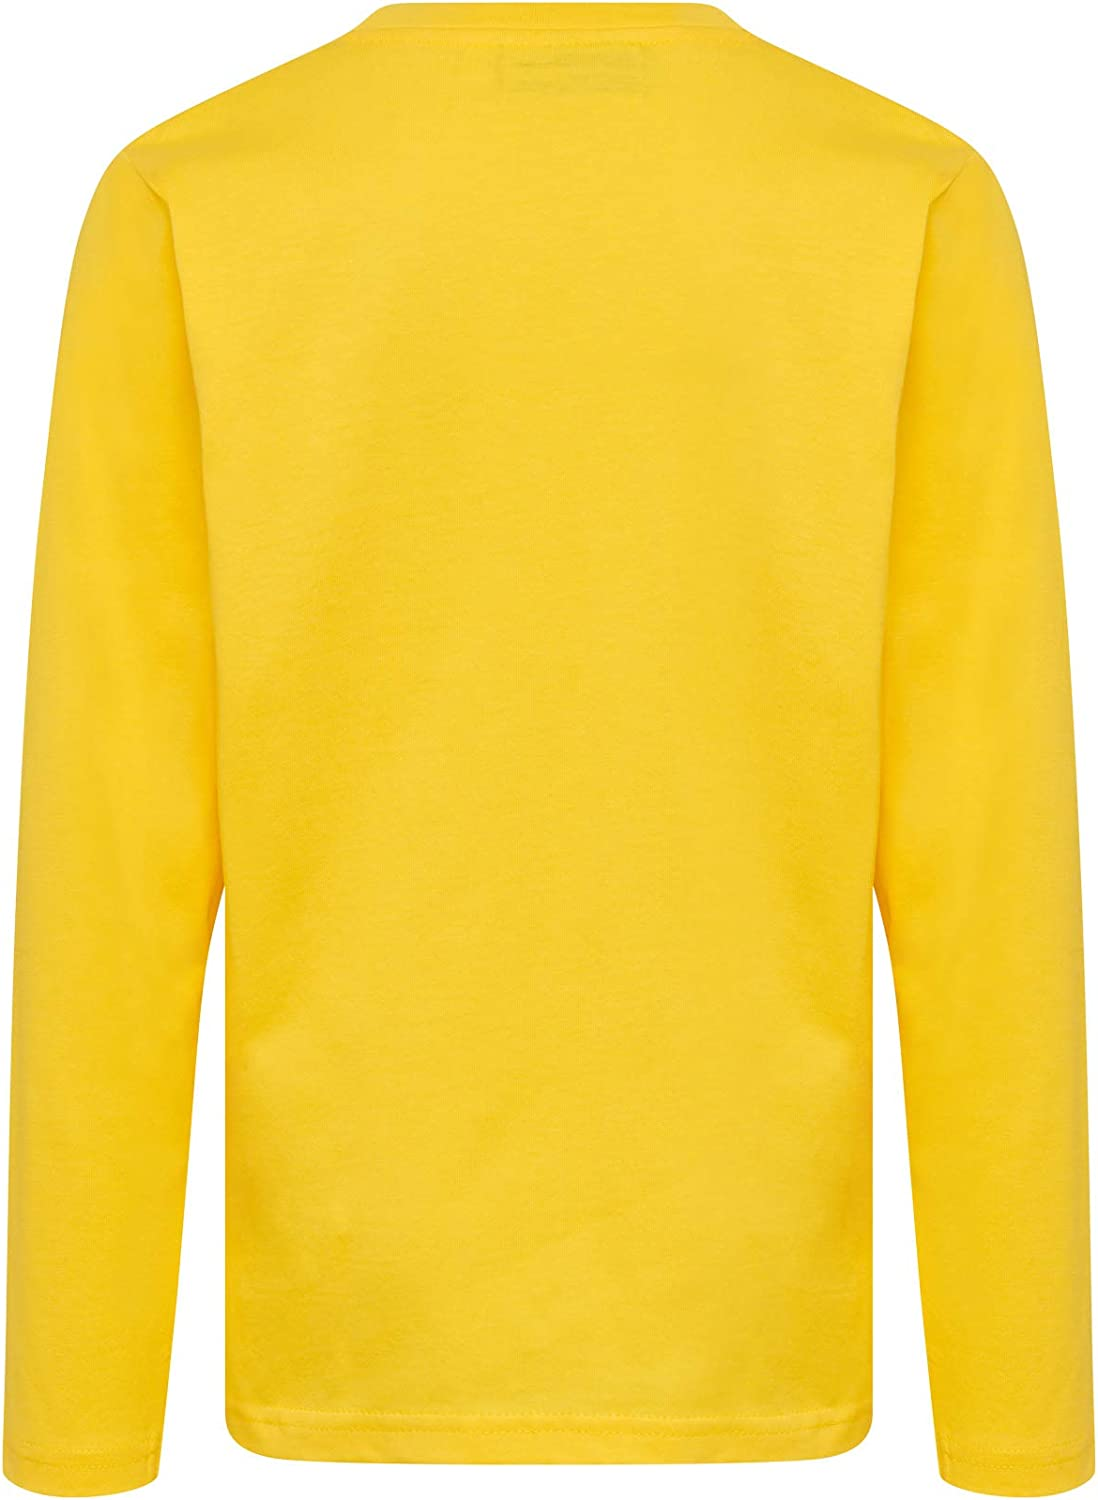 Lego Wear Boys Longsleeve T-Shirt